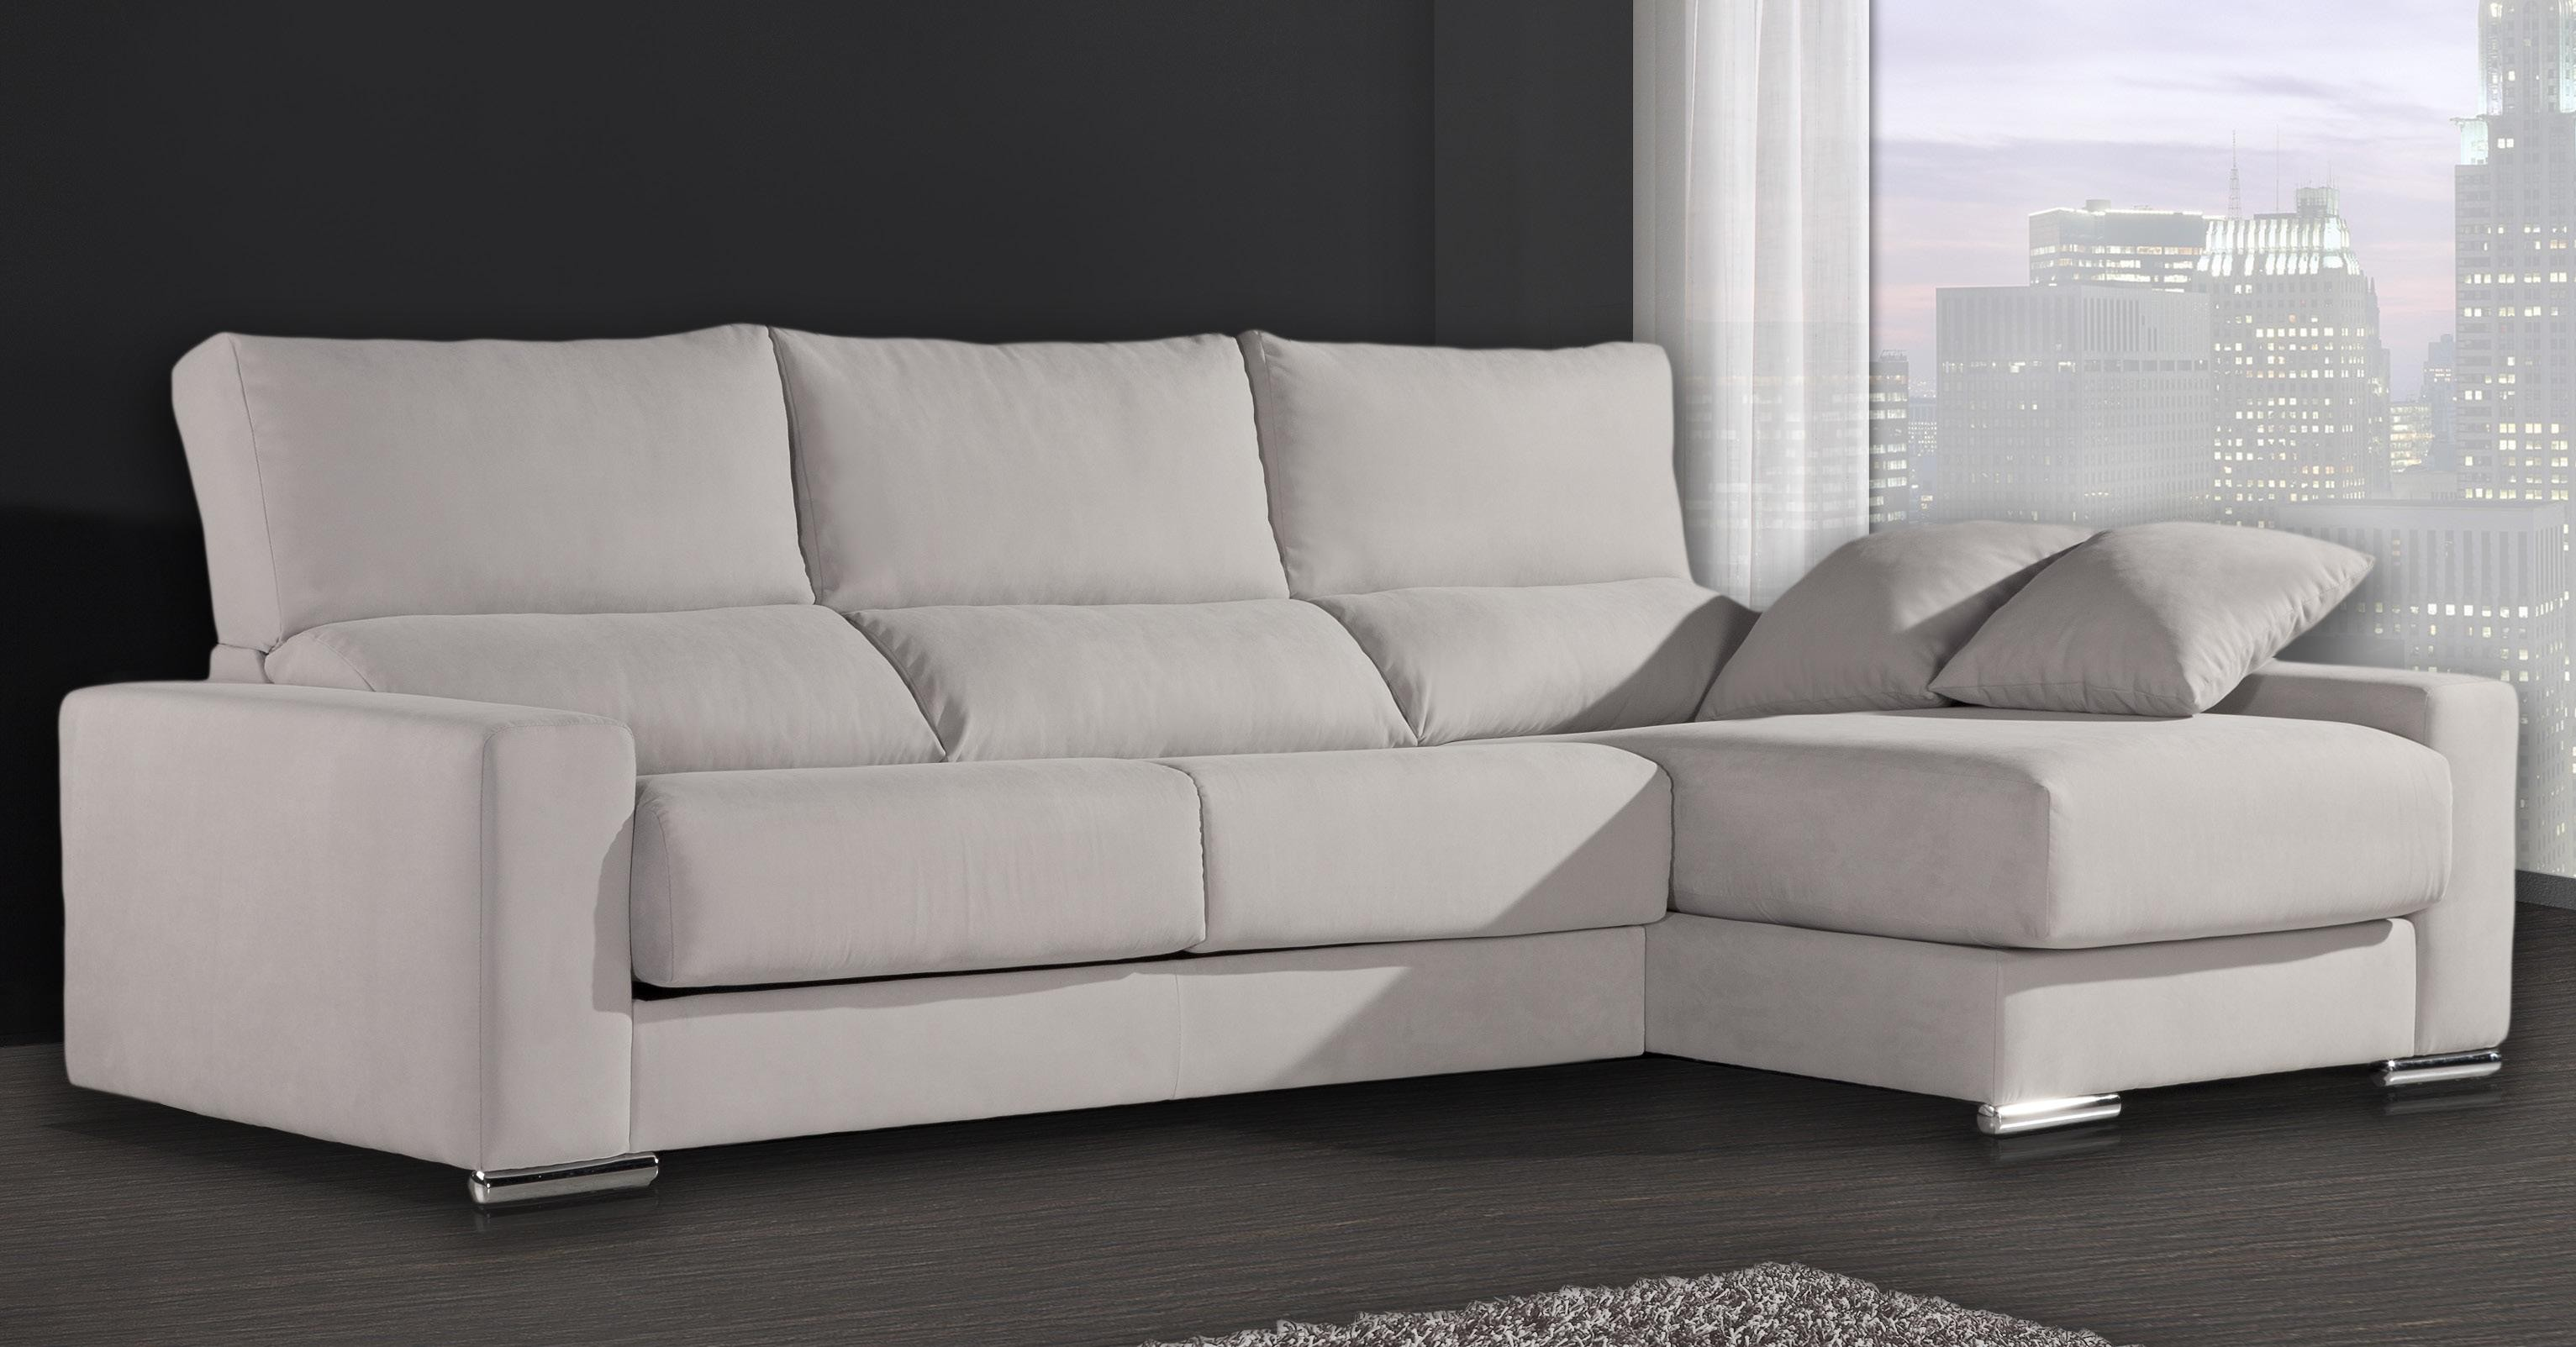 Sofas y chaise longue baratos for Sillones cama modernos